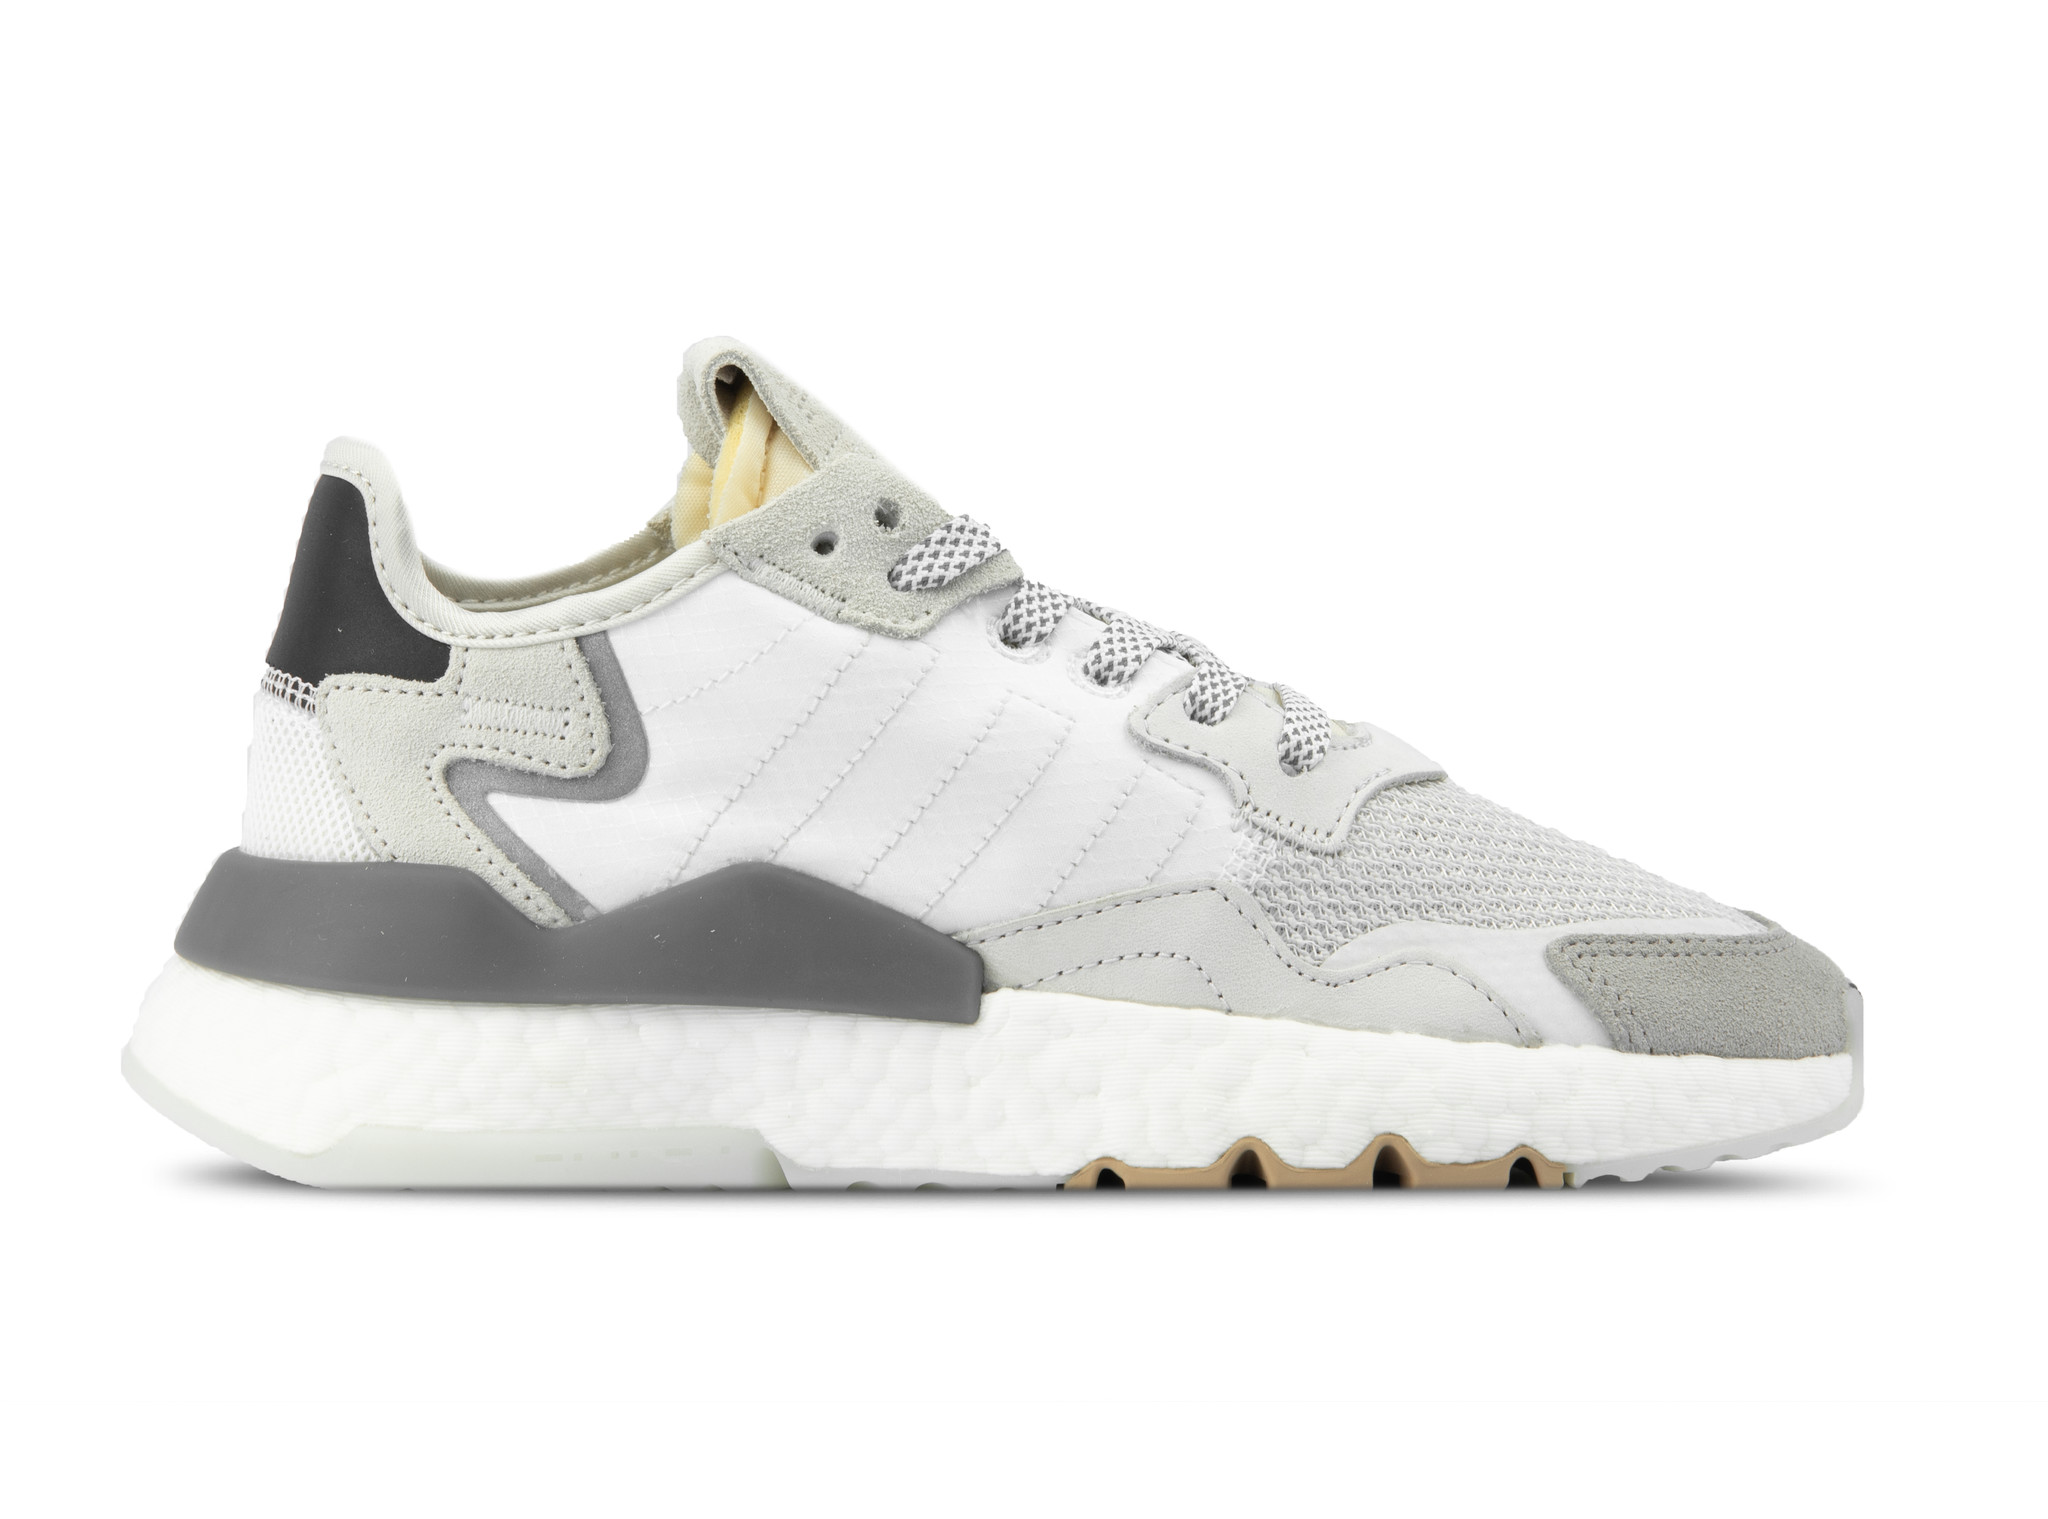 b4cf8c0ba Nite Jogger Footwear White Crystal White Core Black CG5950 will be added to  your shopping card